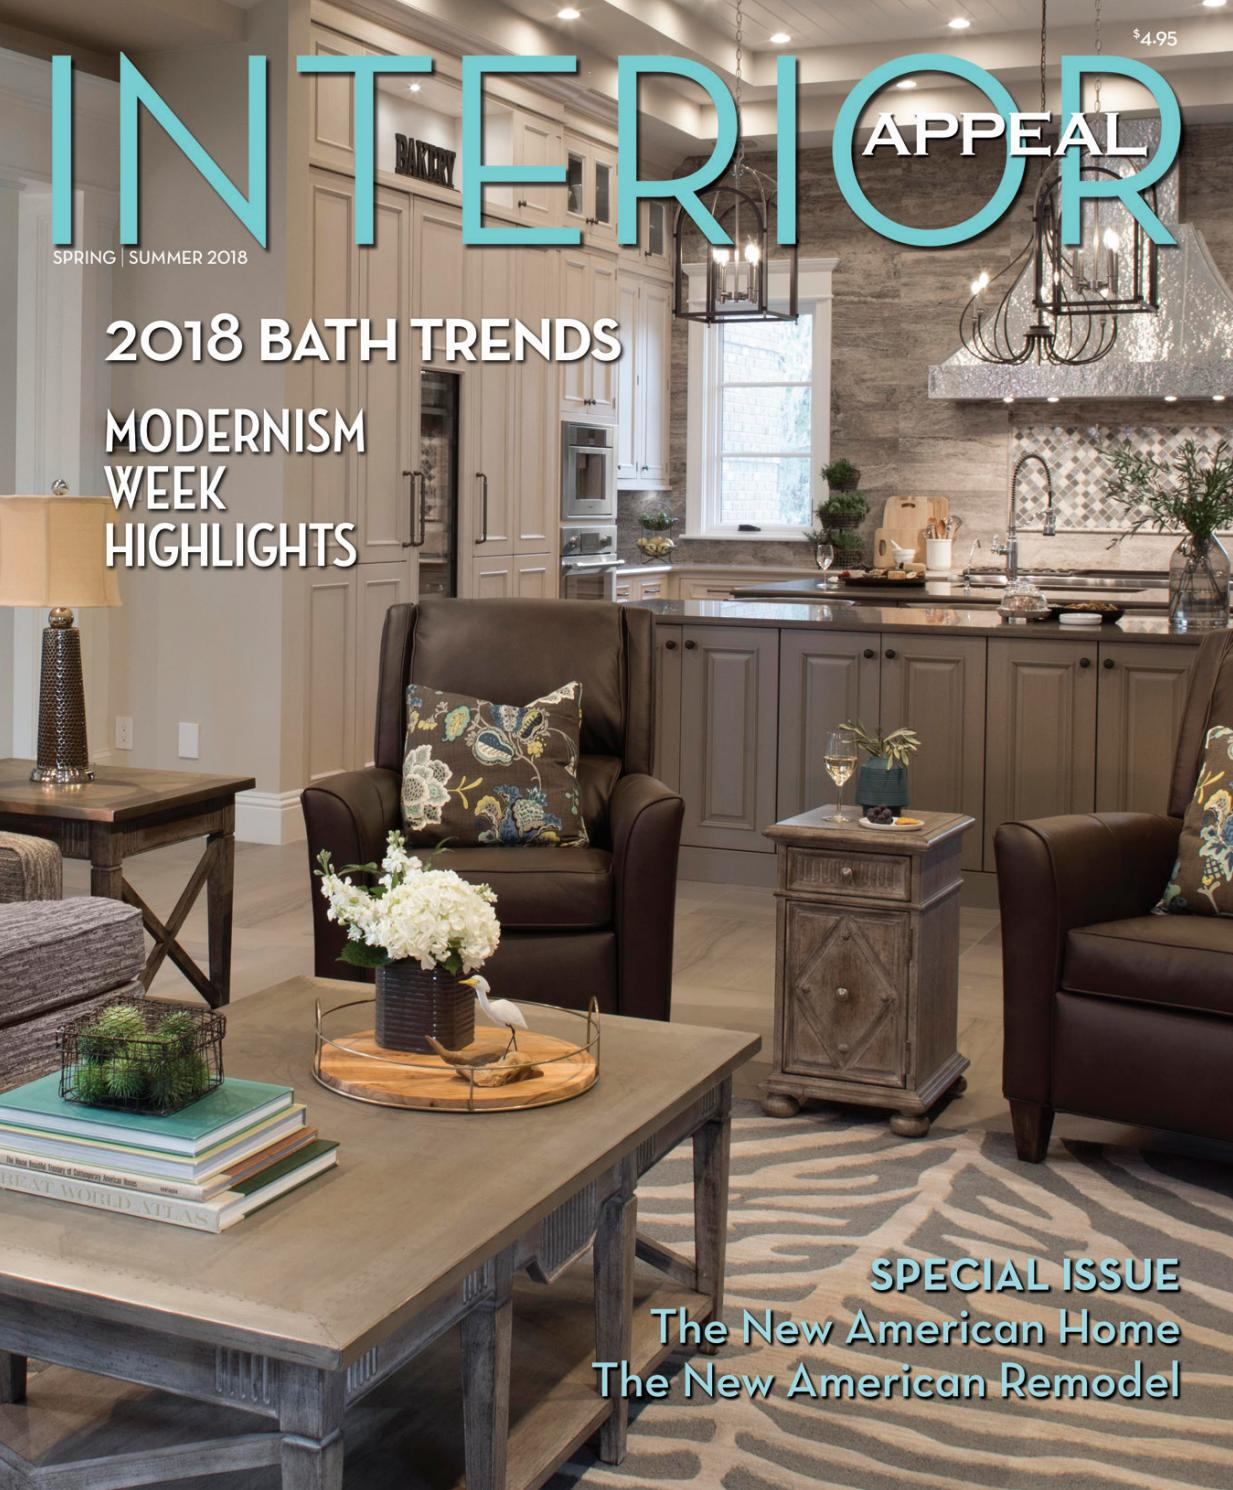 Interior Appeal Spring/Summer 2018Orange Appeal – Issuu Inside Gilad Faux Leather Barrel Chairs (View 12 of 15)